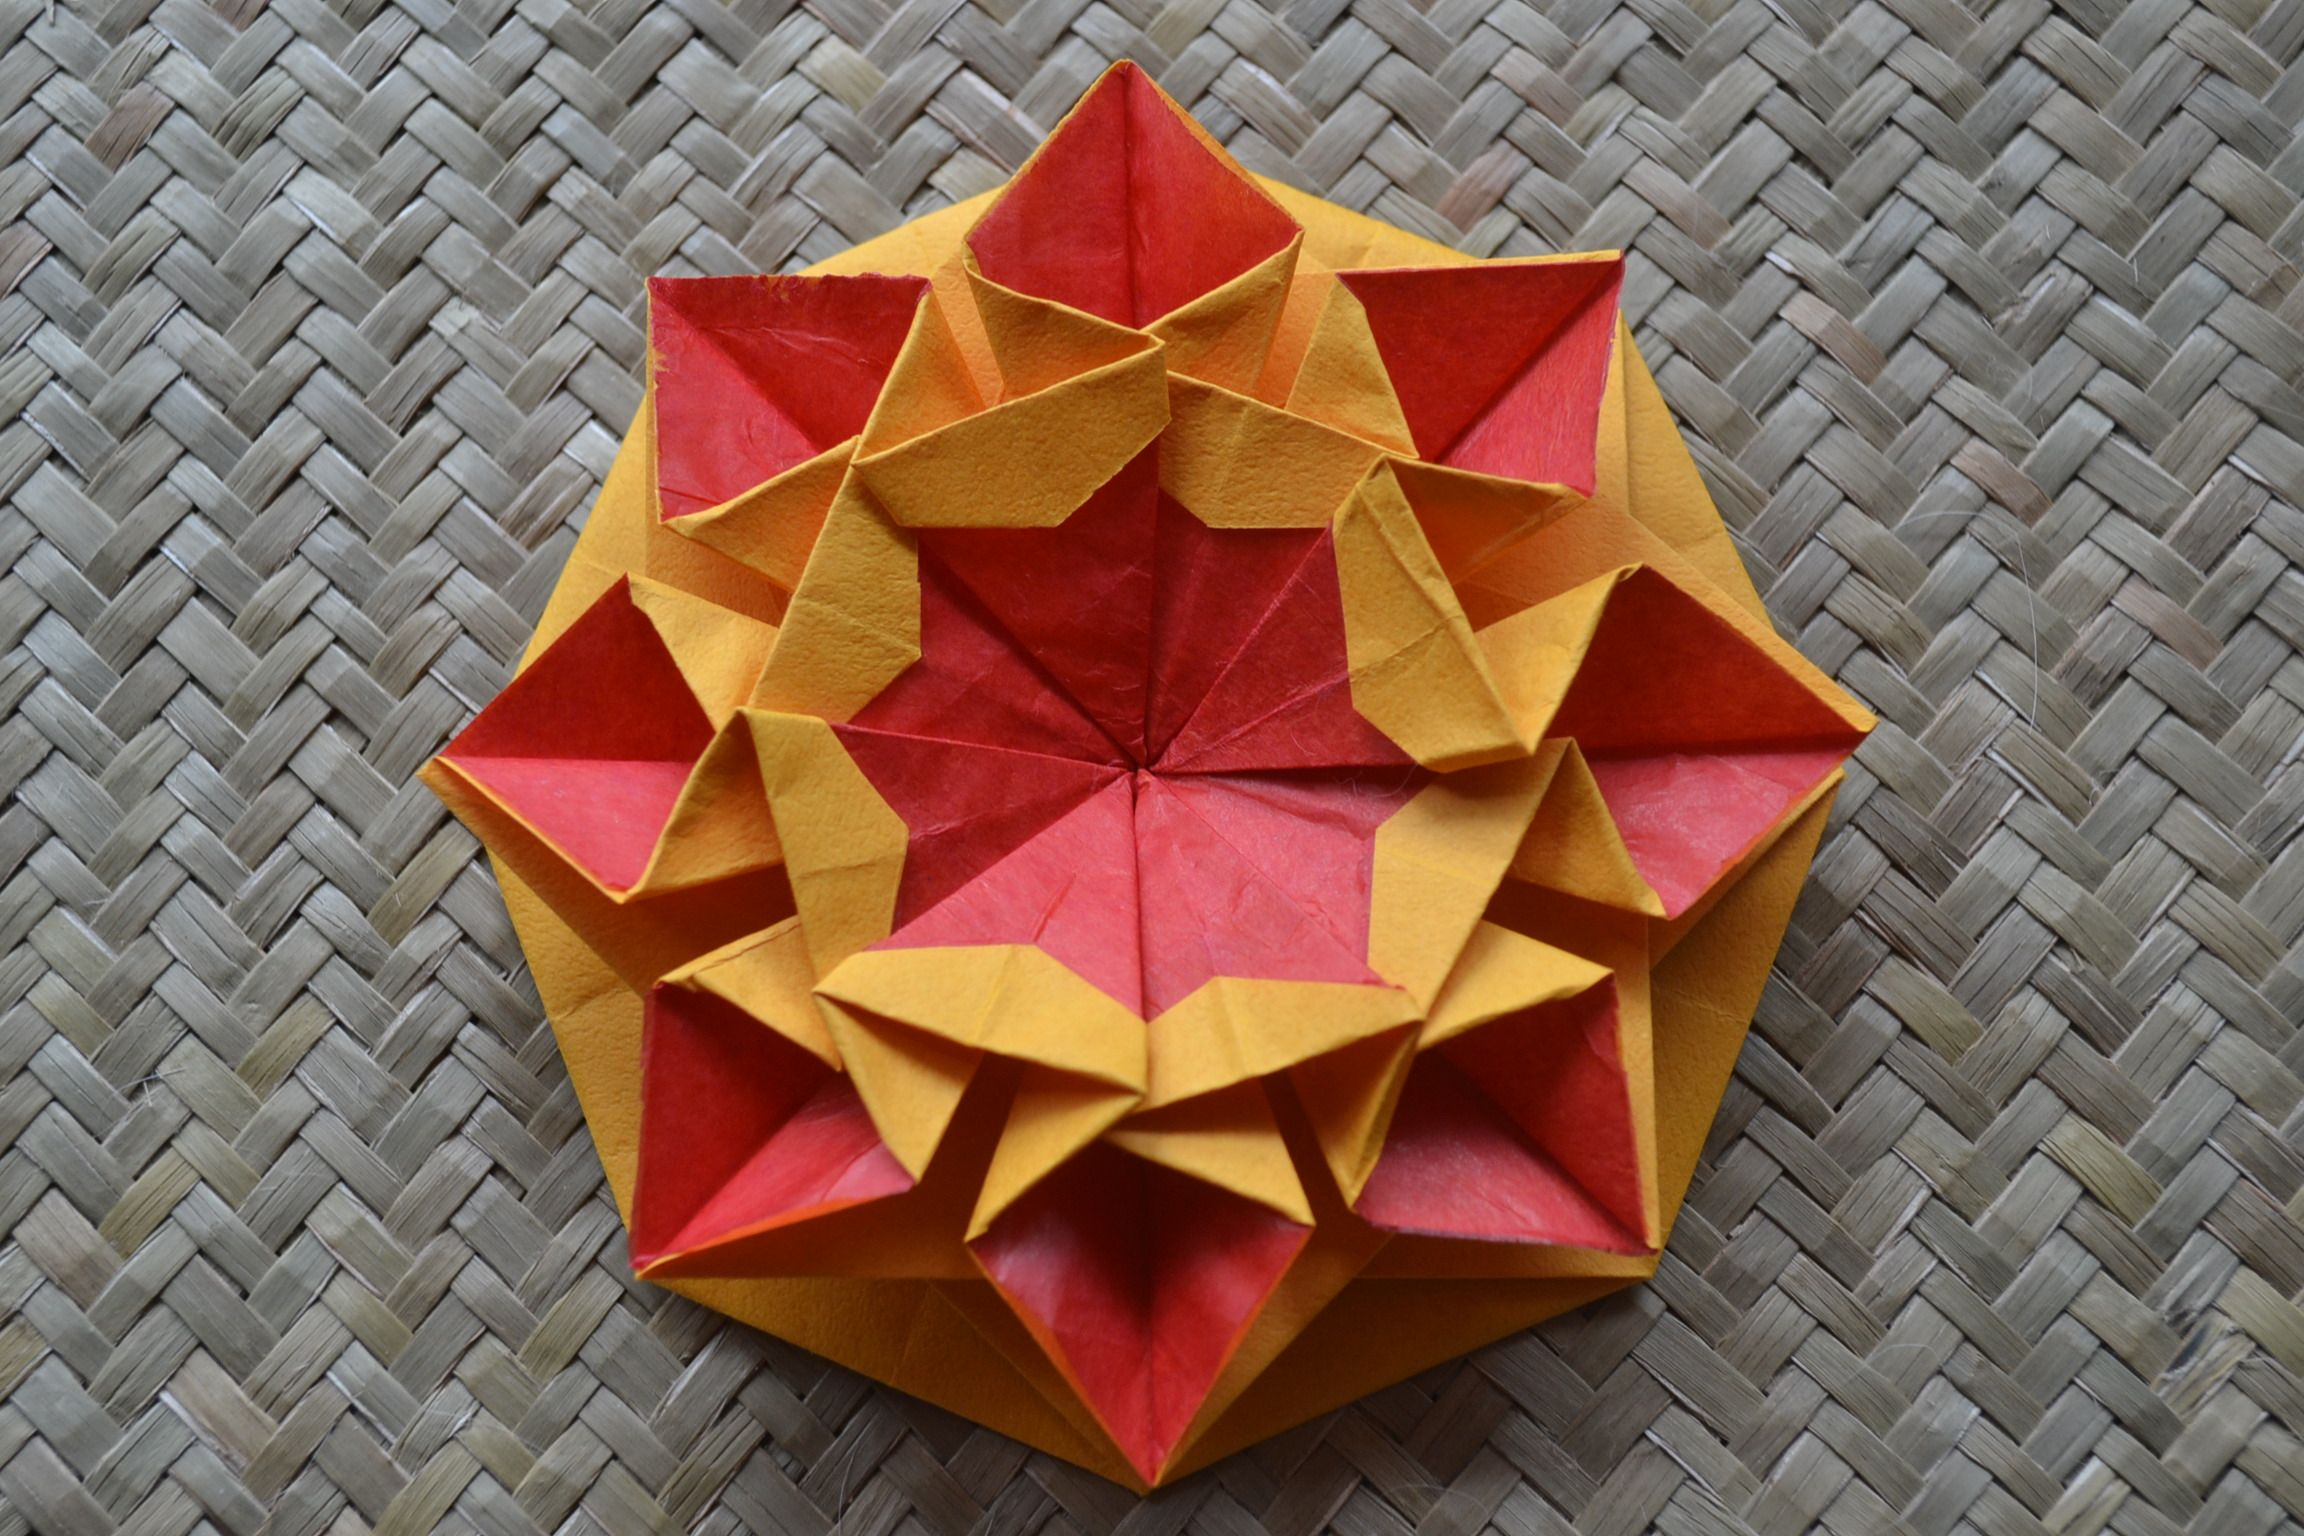 Star Helena Design By Carmen Sprung Origami Quilt Paper Folding Art Origami Paper Folding